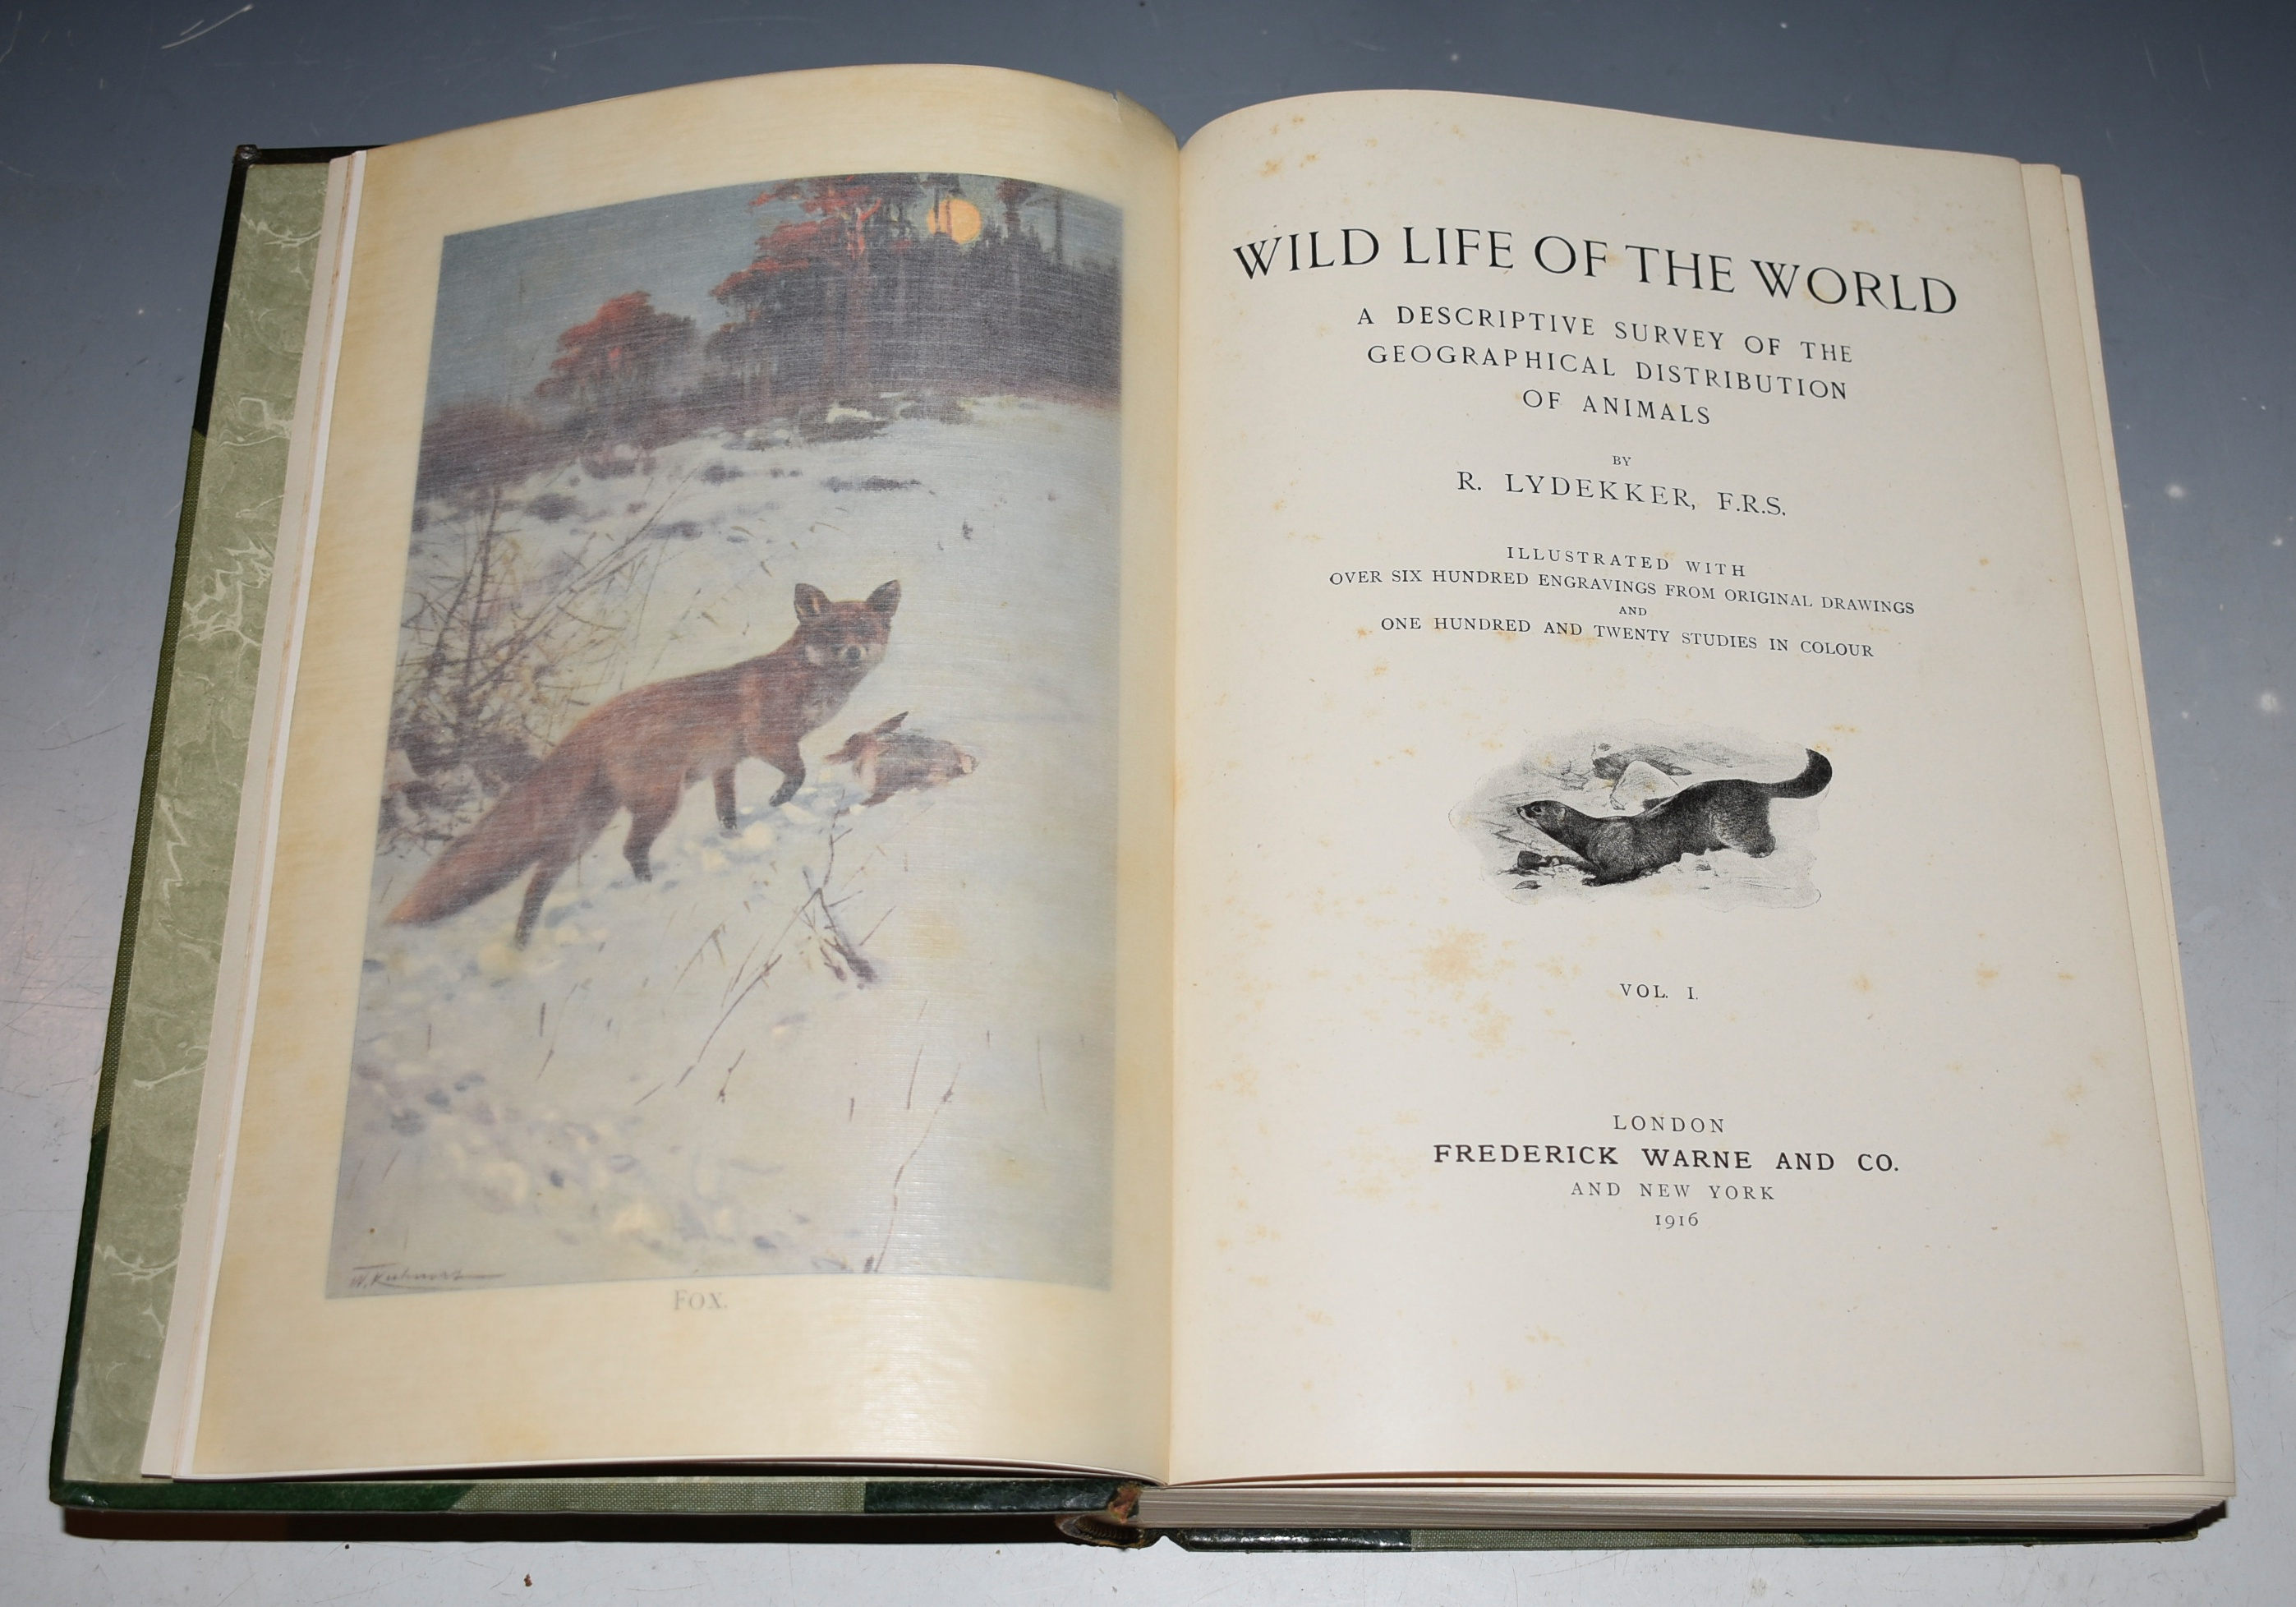 Image for Wild Life of the World. A Descriptive Survey of the Geographical Distribution of Animals. Illustrated with over six hundred engravings from original drawings and one hundred and twenty studies in colour. Three volumes.